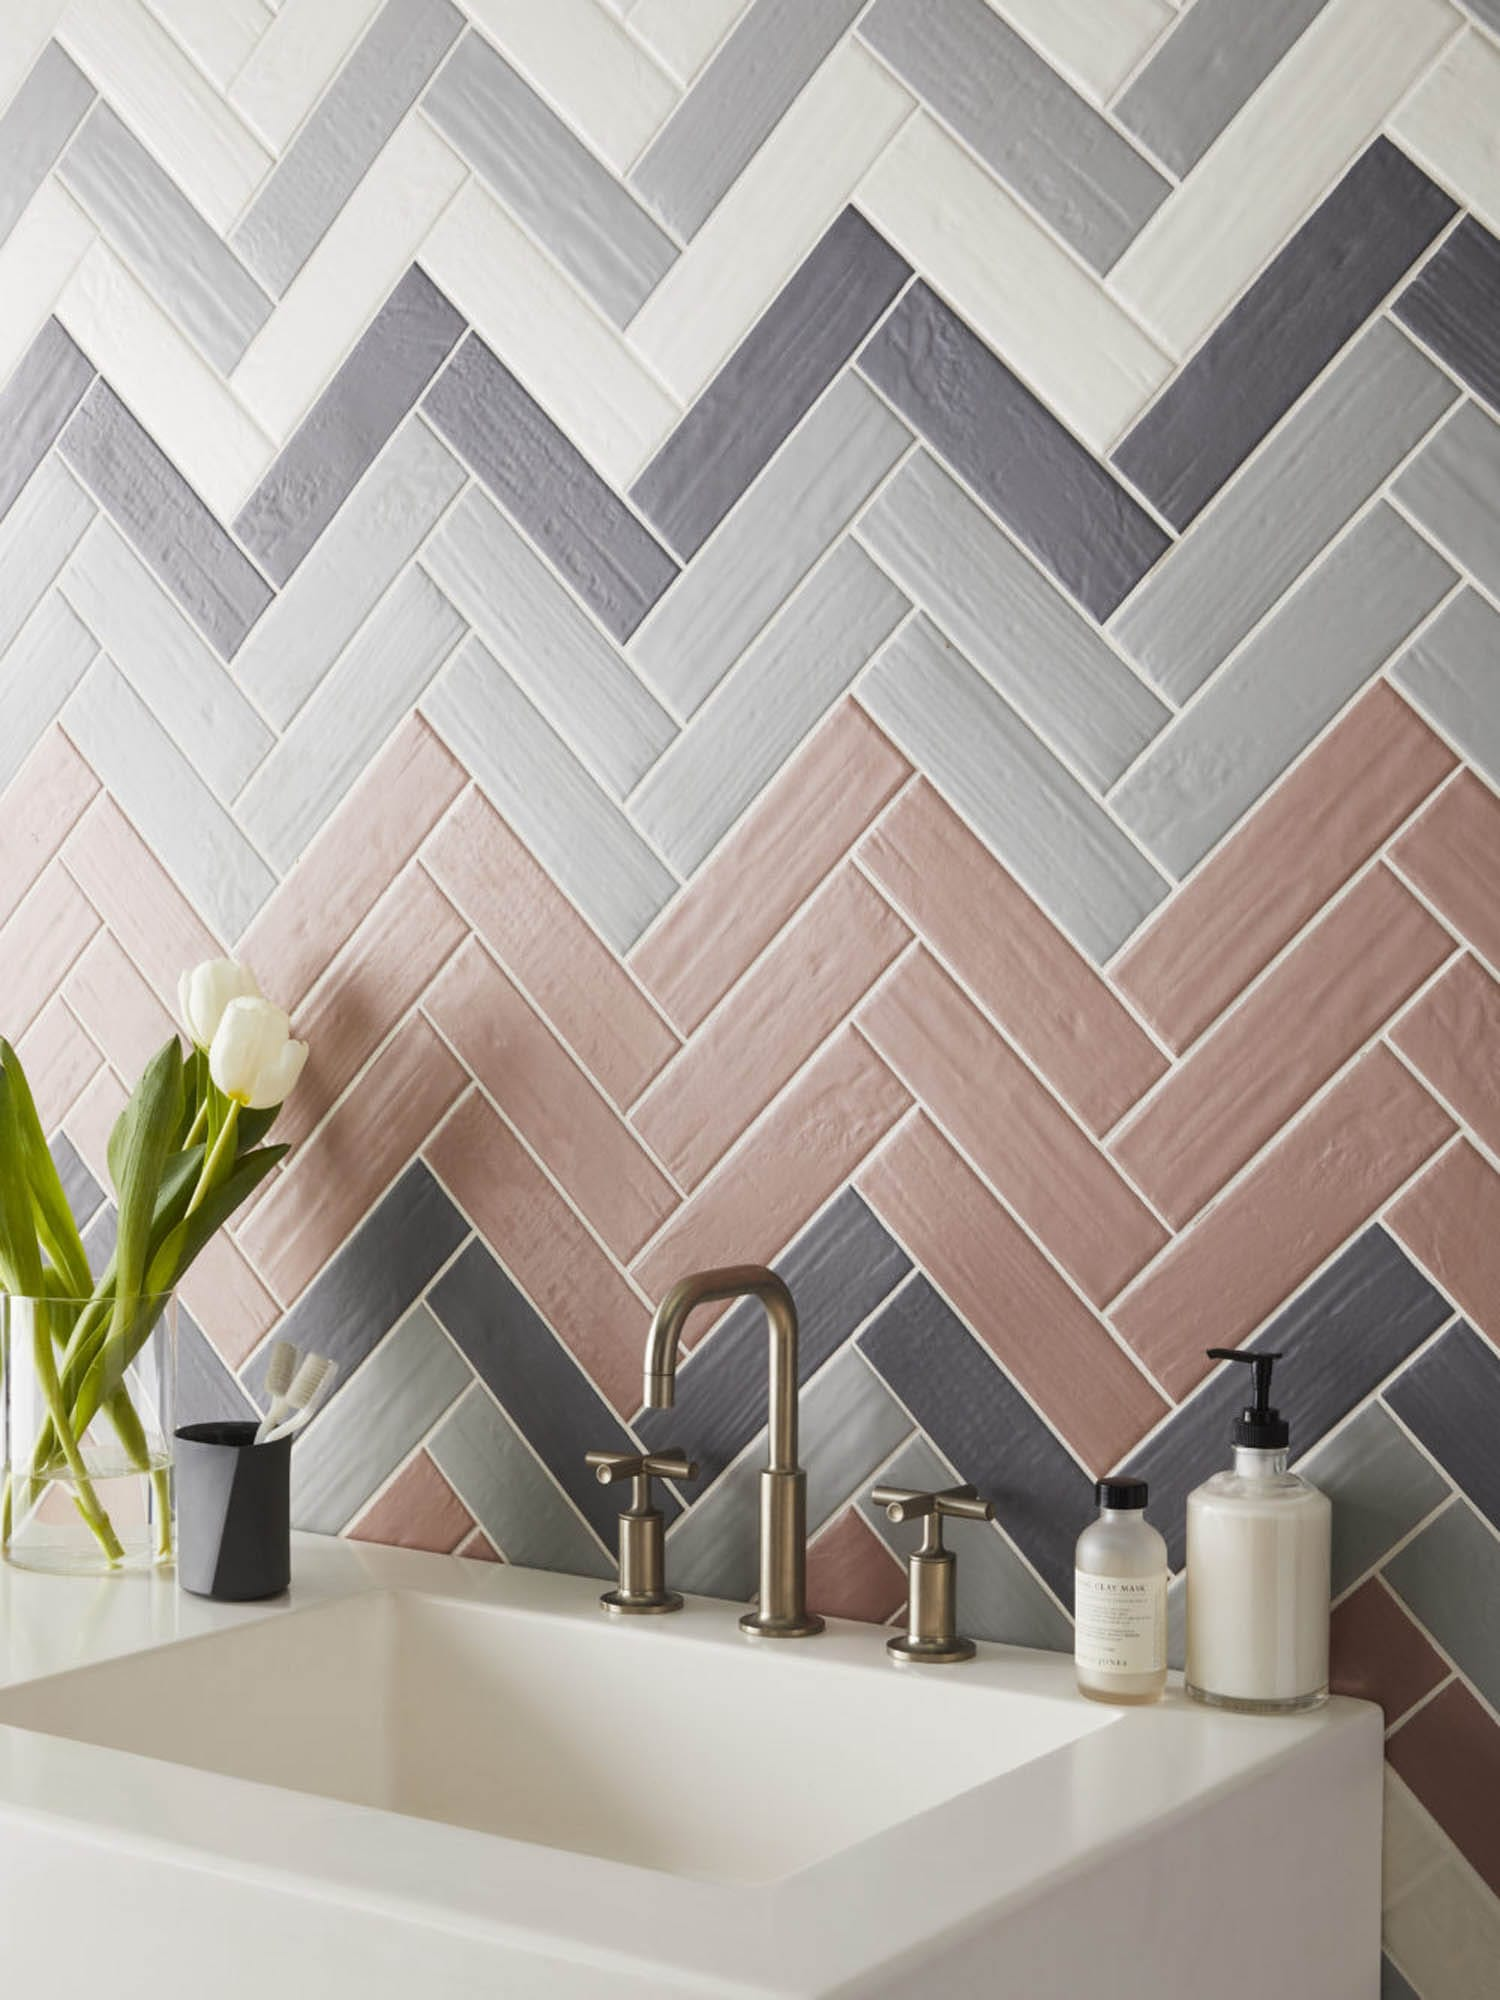 Tile Patterns And Layouts The Tile Shop Blog